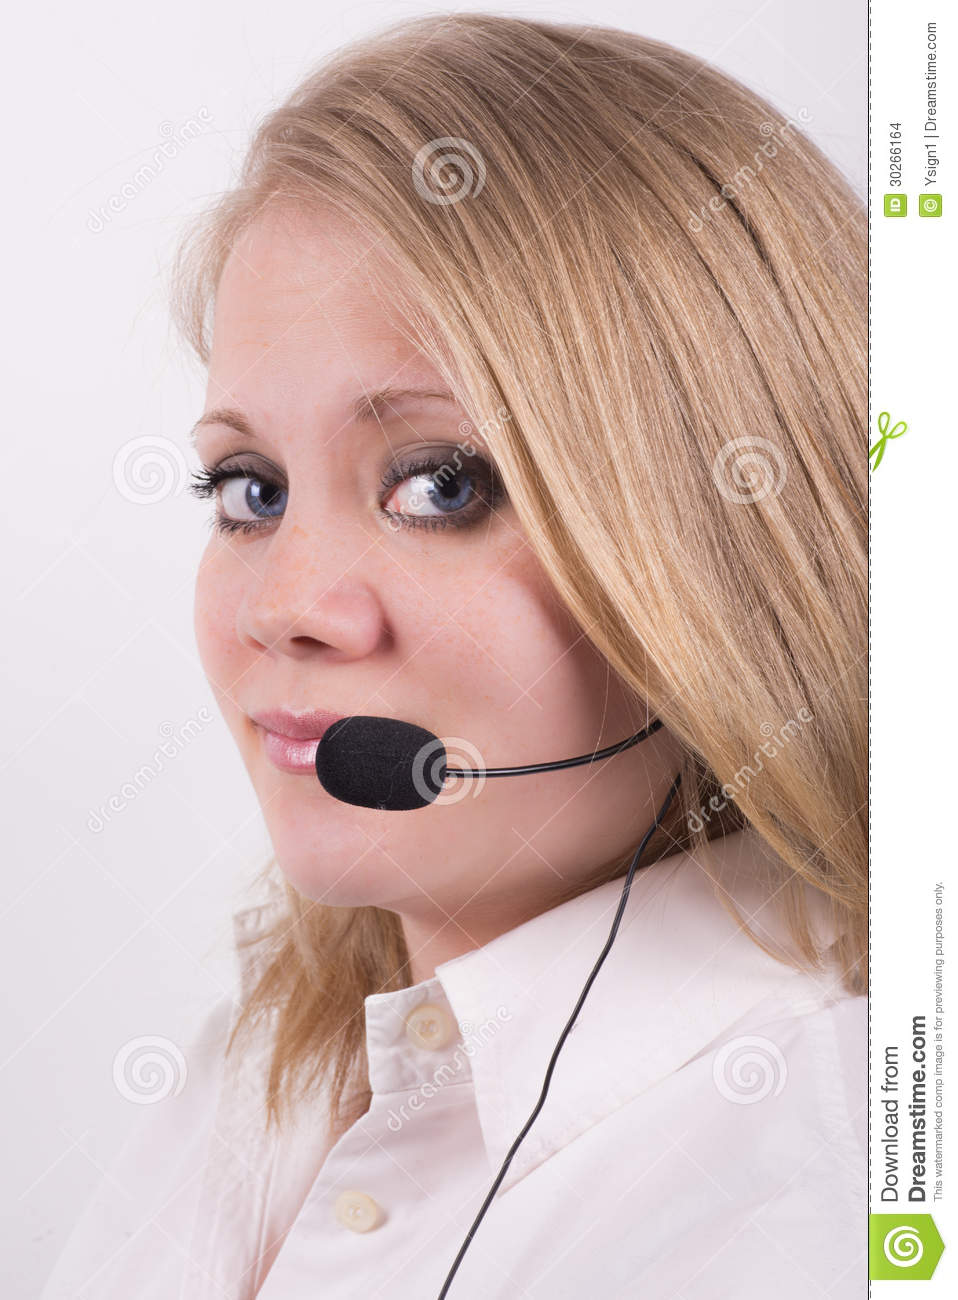 Professional Female Operator Looking At The Camera Stock ...